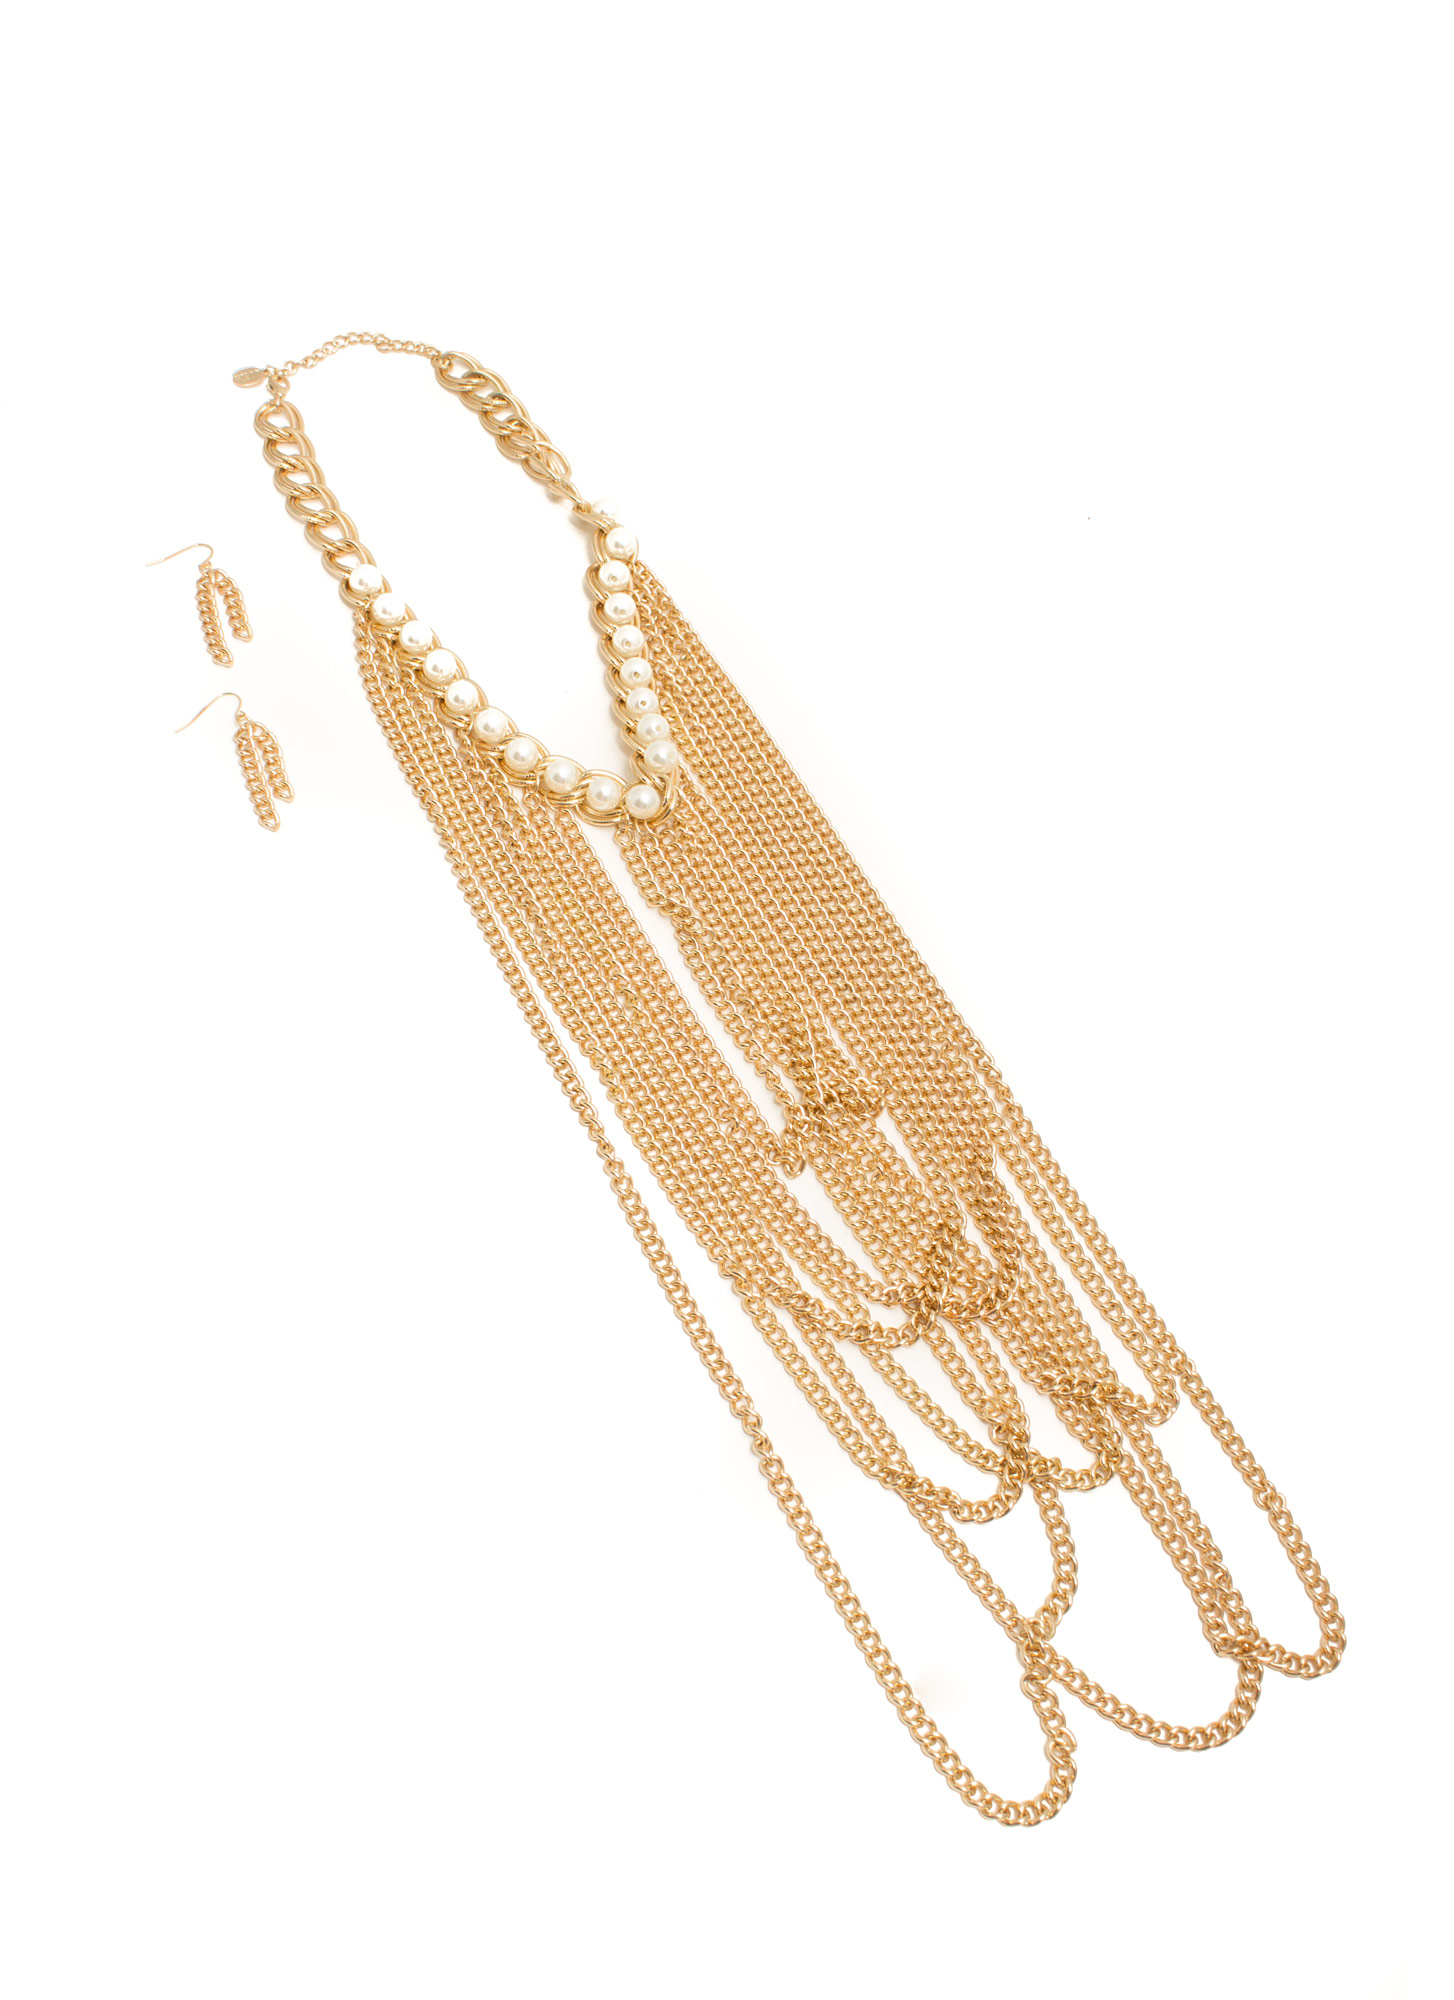 Draped 'N Looped Chain Link Necklace Set  GOLDIVORY